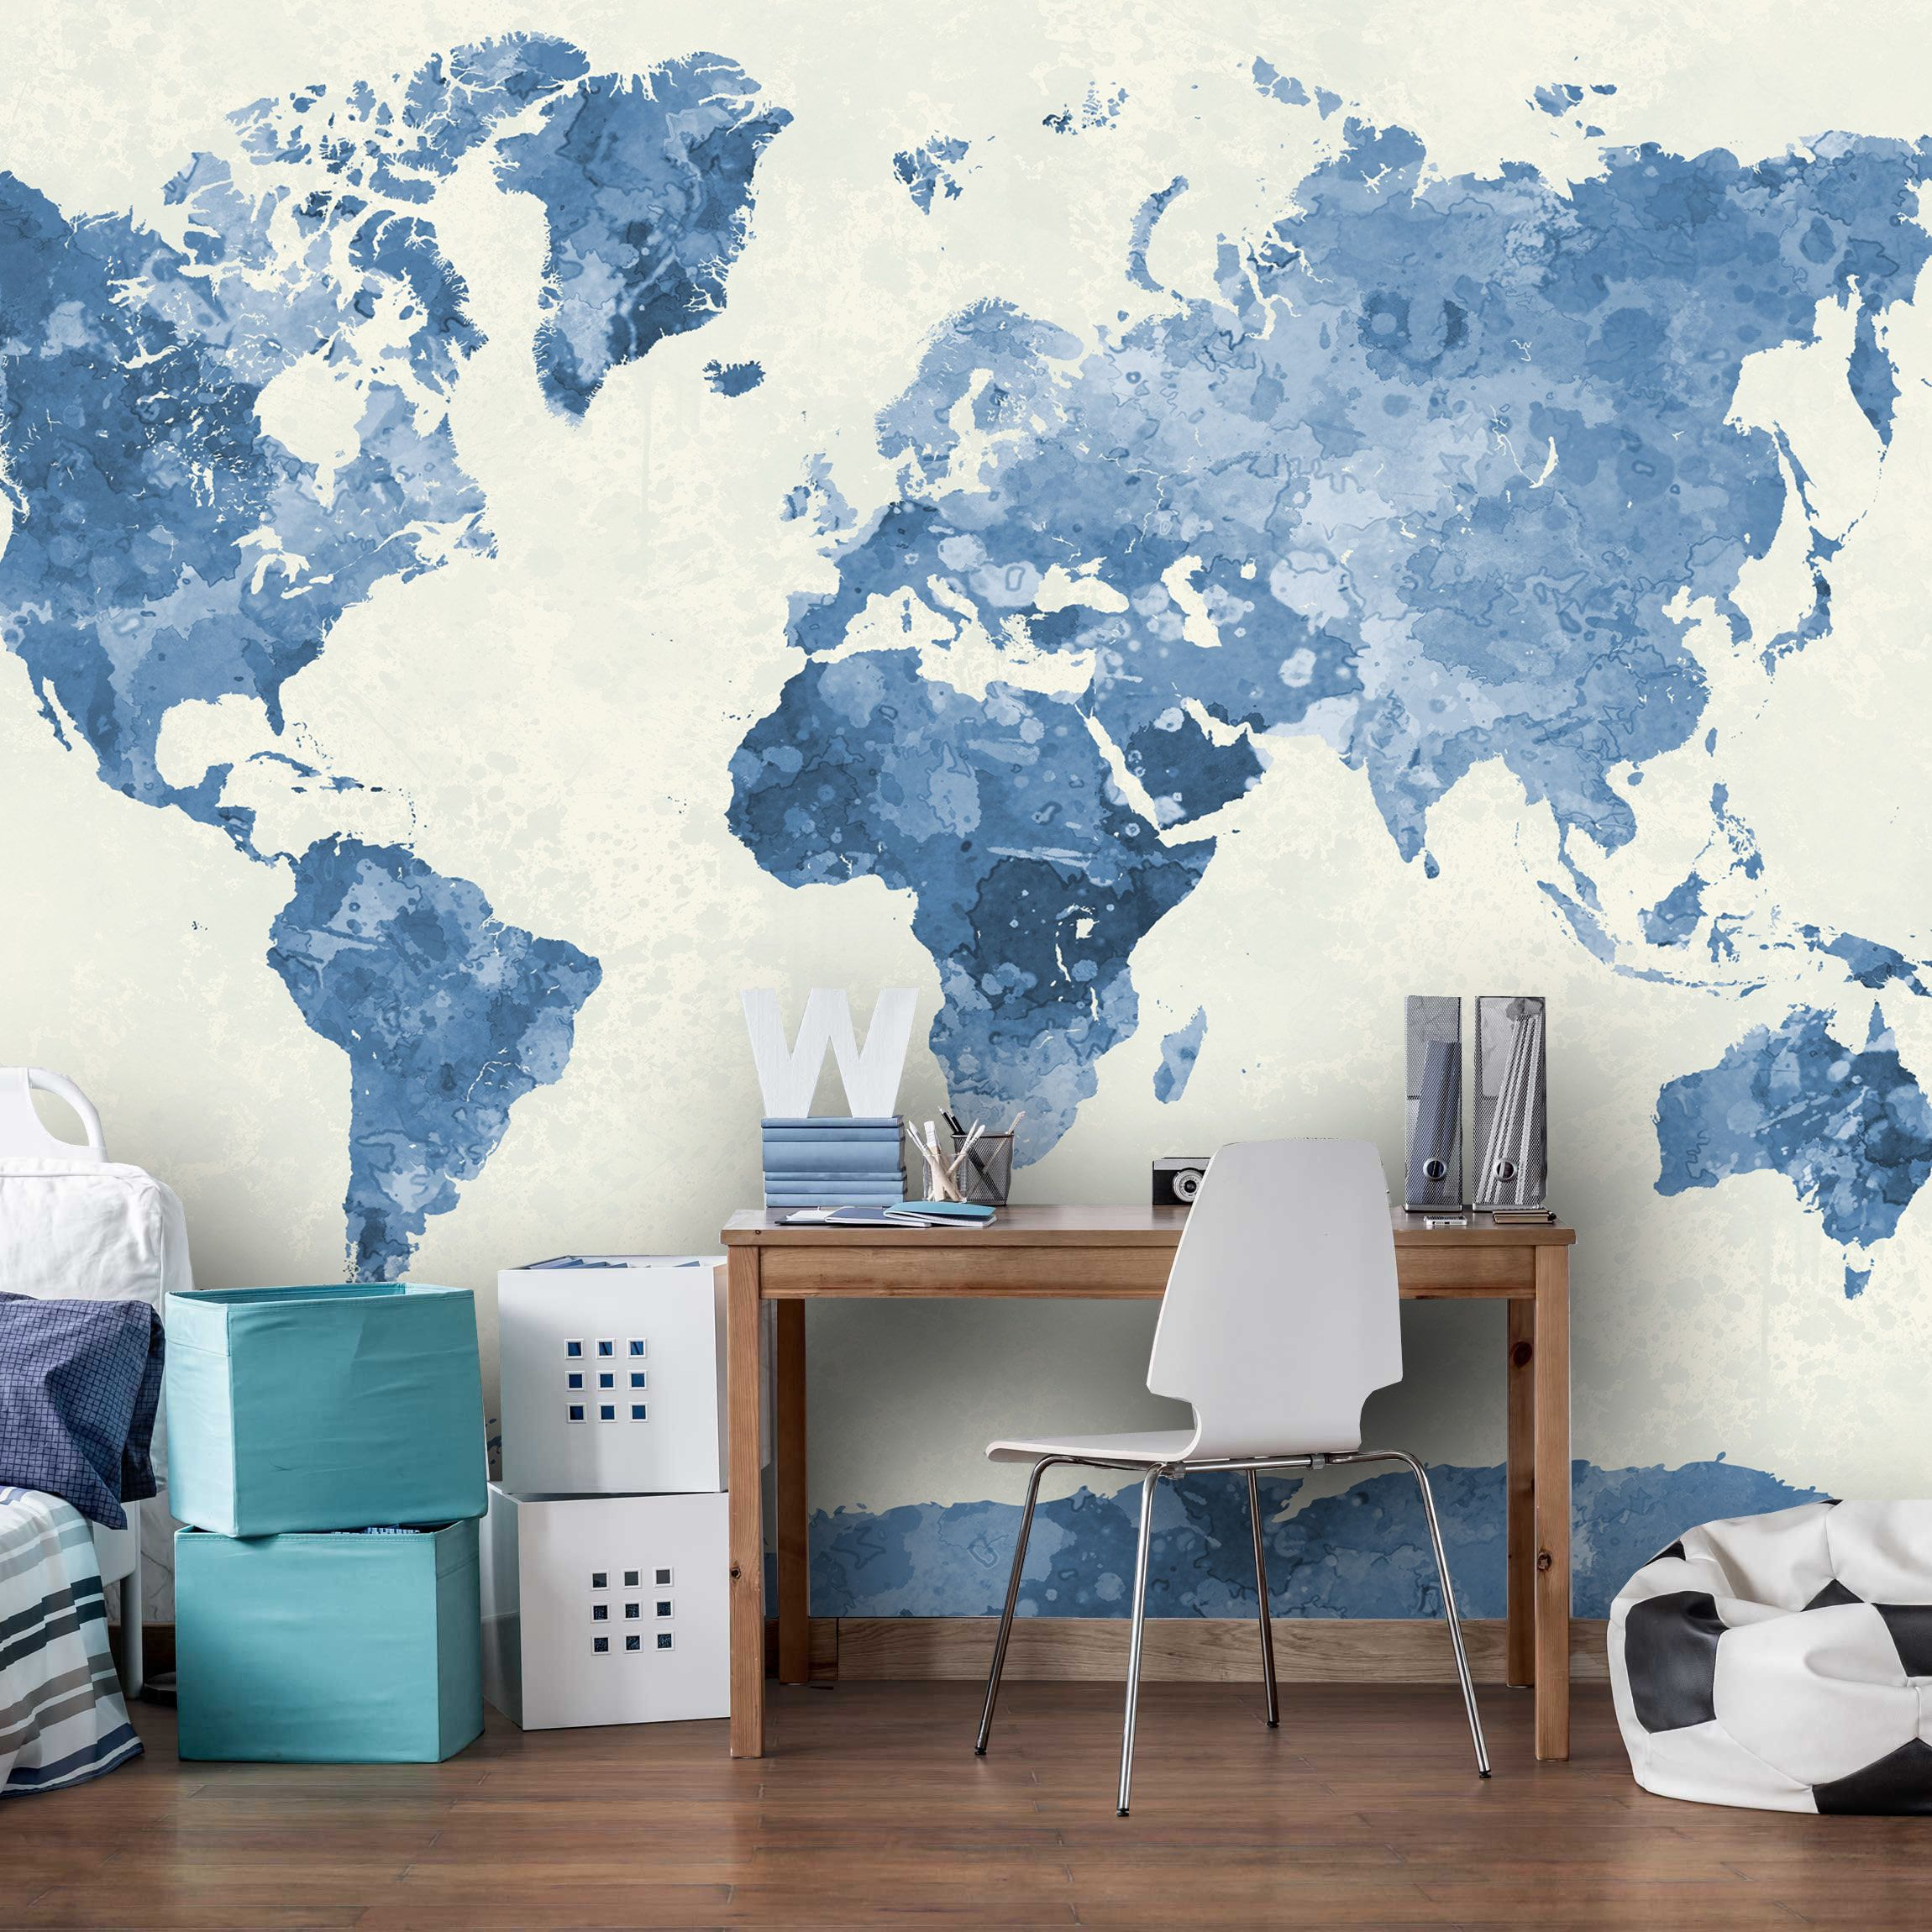 Watercolor World Map In Blue Wall Mural, Watercolor World